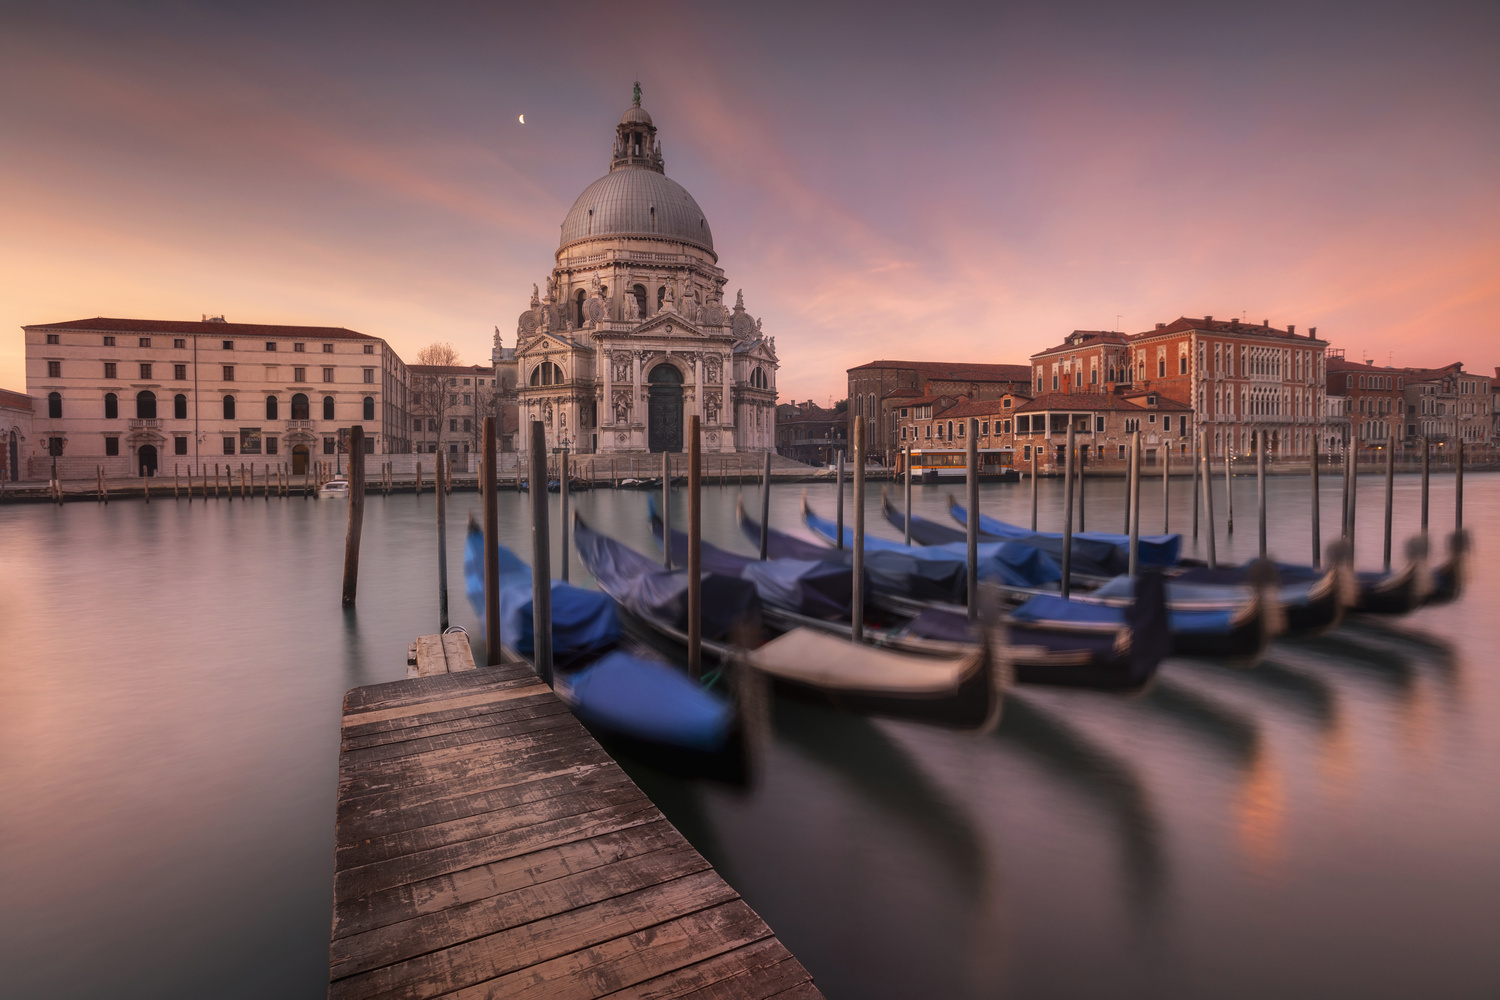 From Venice with love by Piotr Skrzypiec